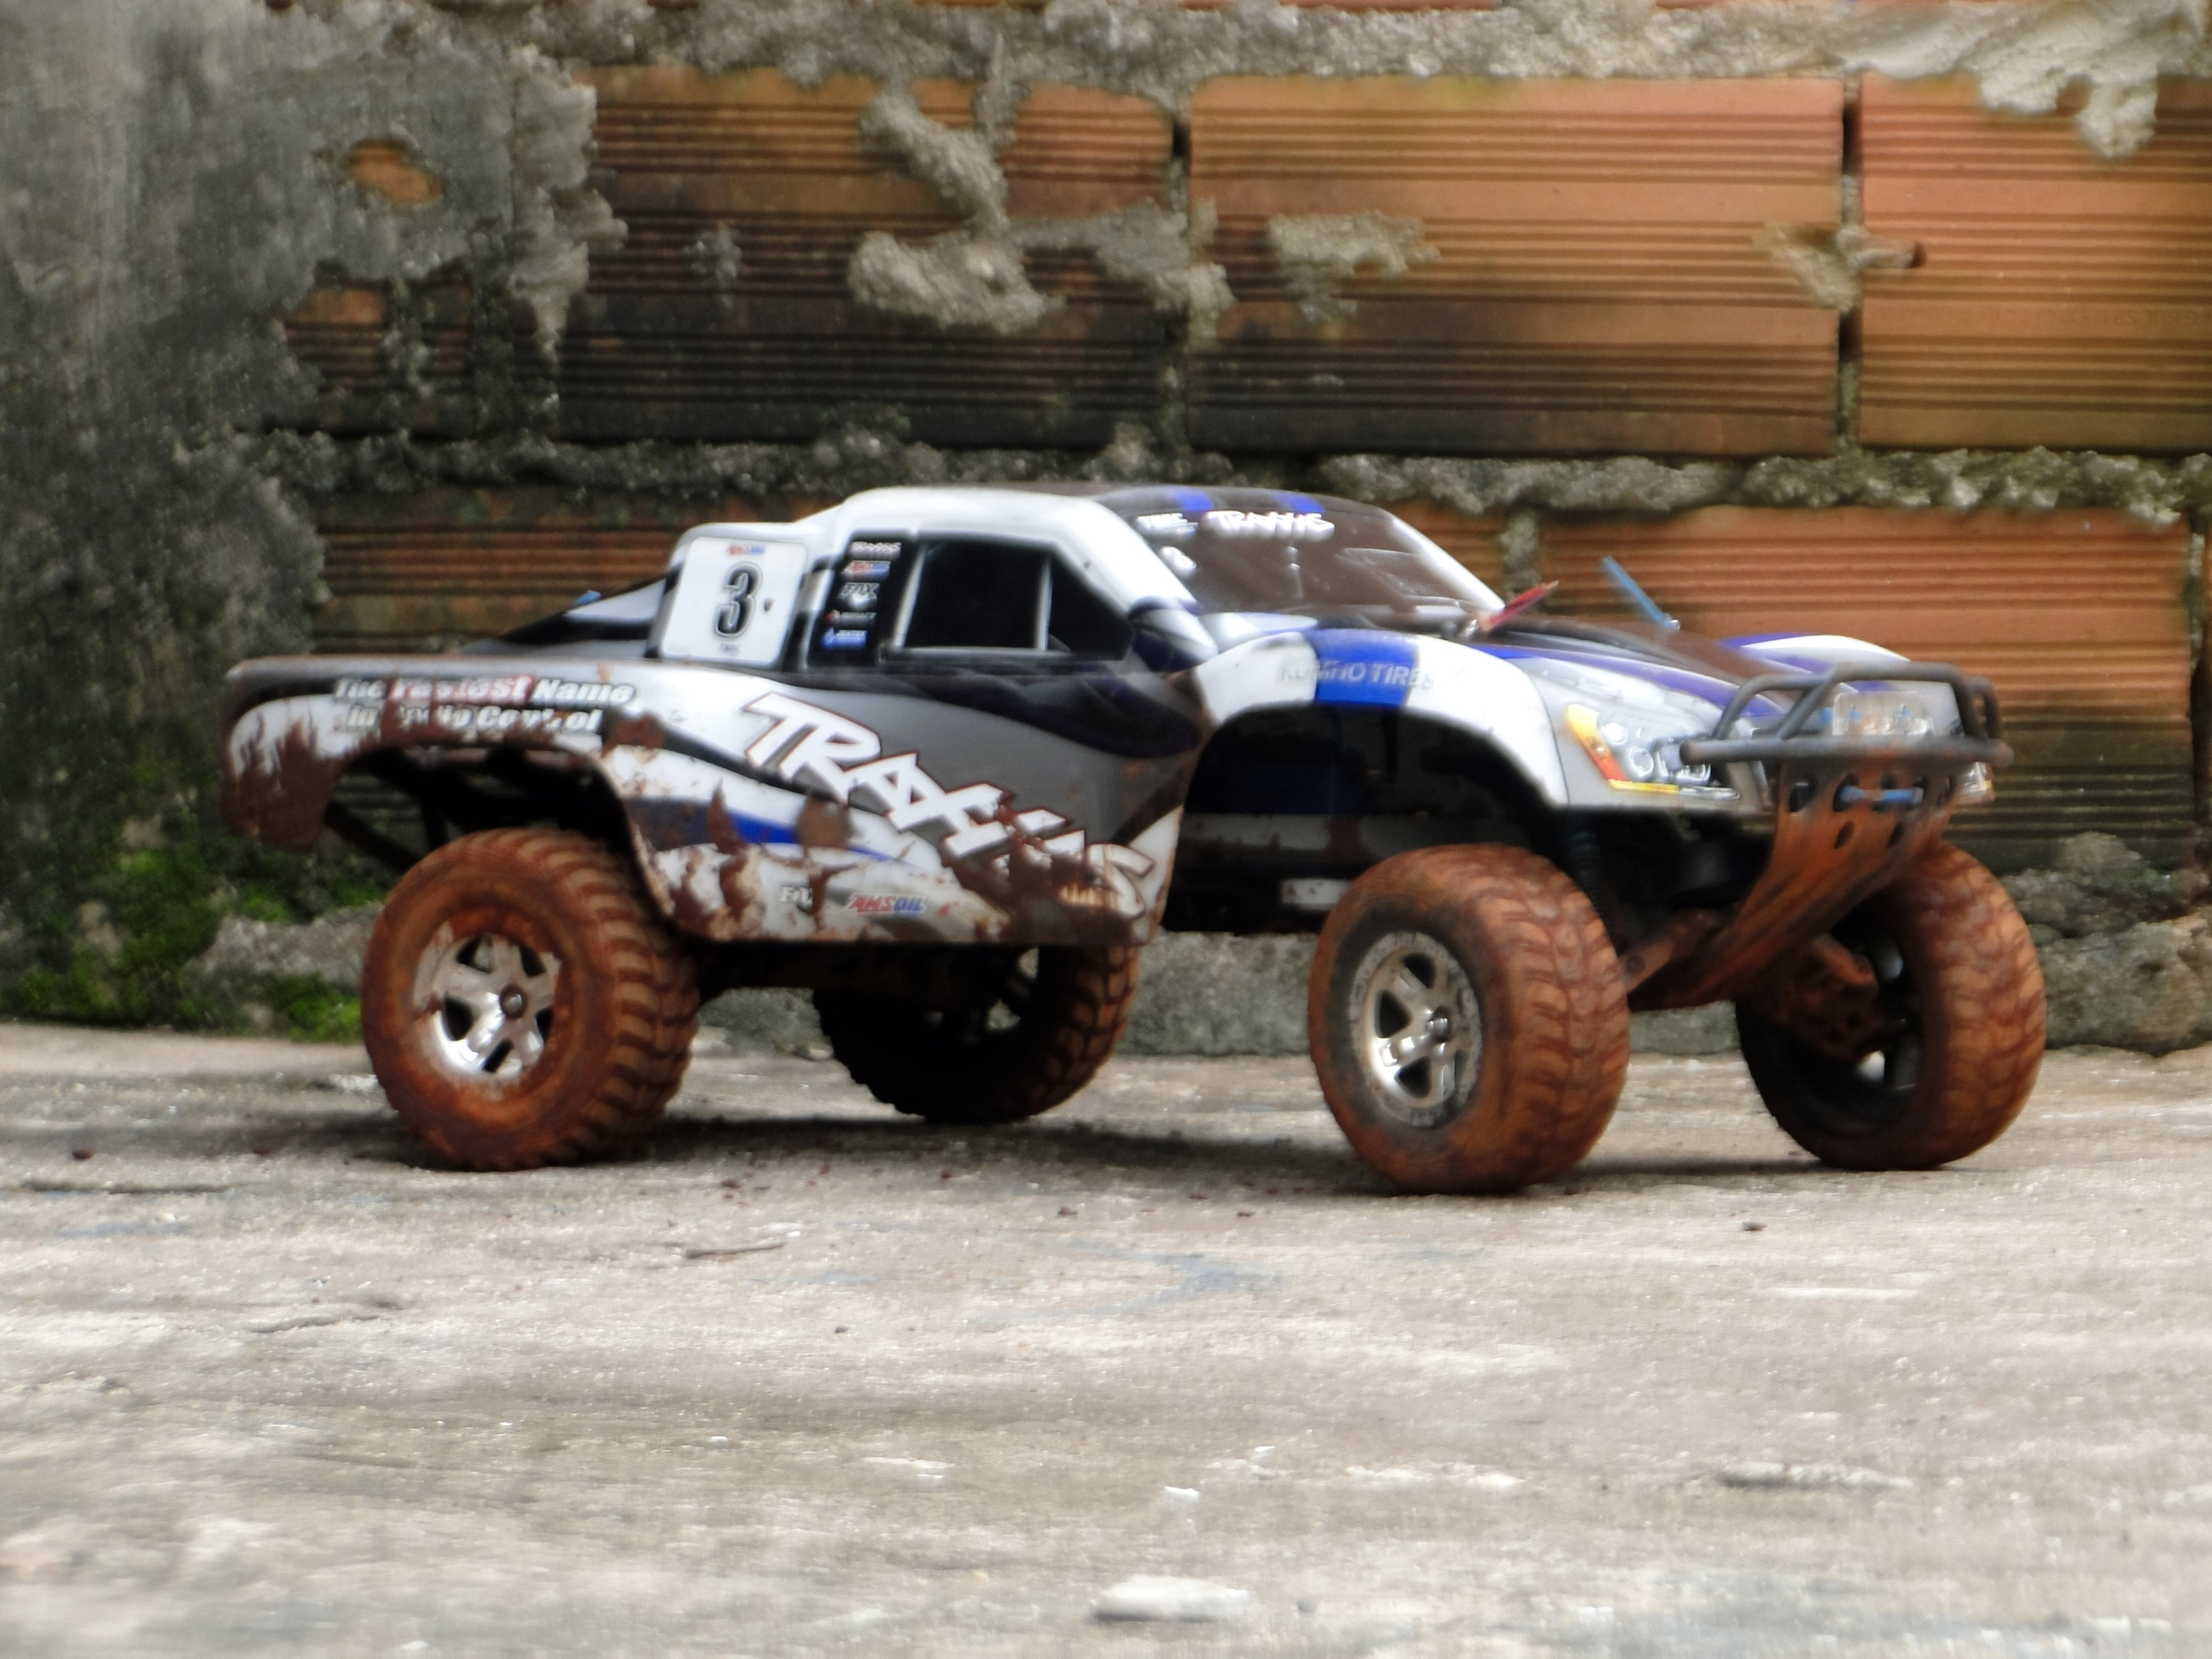 Anyone Here Into Rc Cars Off Topic Automation Traxxas Screensaver Used Slash For Sale And Also The Stampedes Wheels Body Was Lifted Using Adjustable Mounts From Pede Fentders Were Cut But Instead Of Cutting Them Round